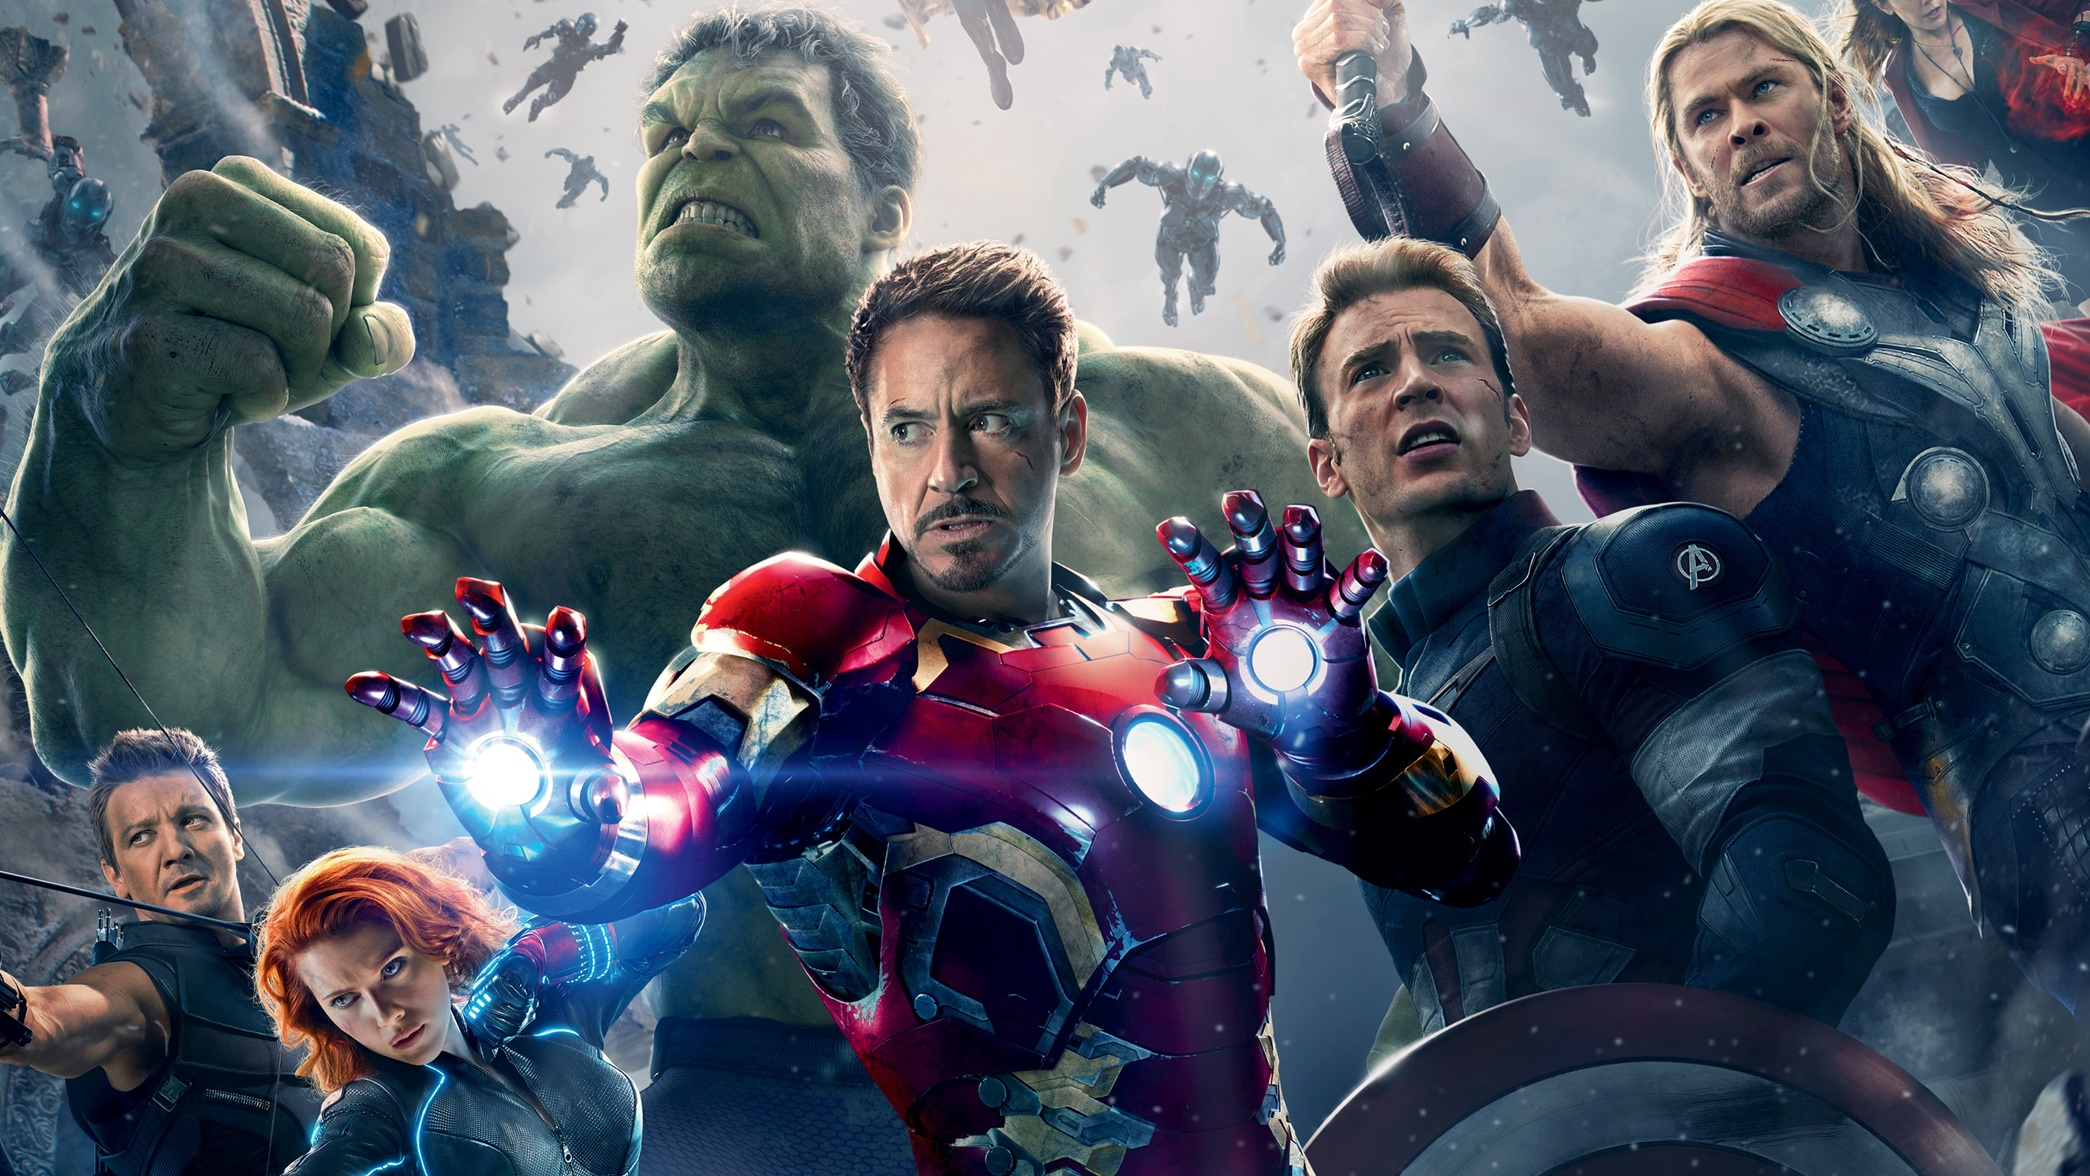 avengers_age_of_ultron_hi_res_textless_poster_by_ihaveanawesomename-d8jk9vx.jpg